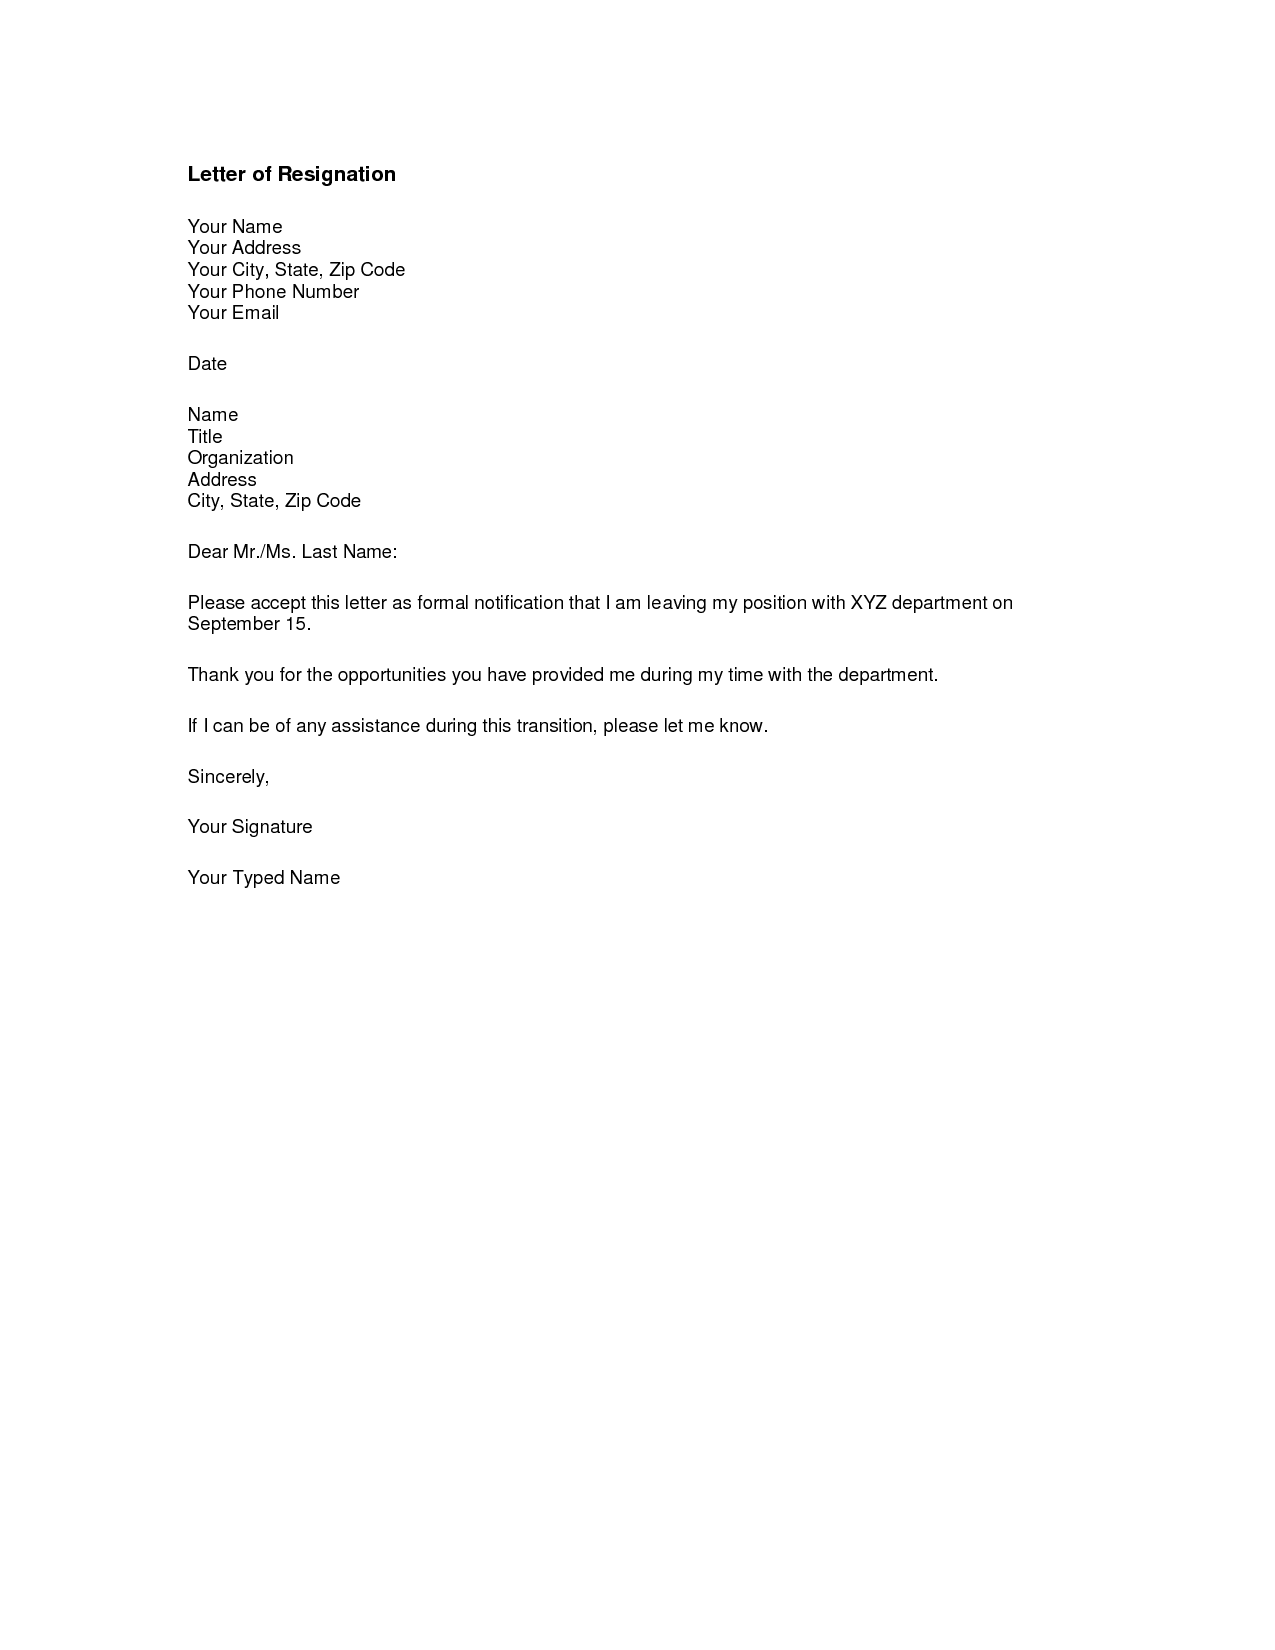 resignation letter template banking professional resume cover resignation letter template banking formal letter sample template layout printable letter of resignation form generic